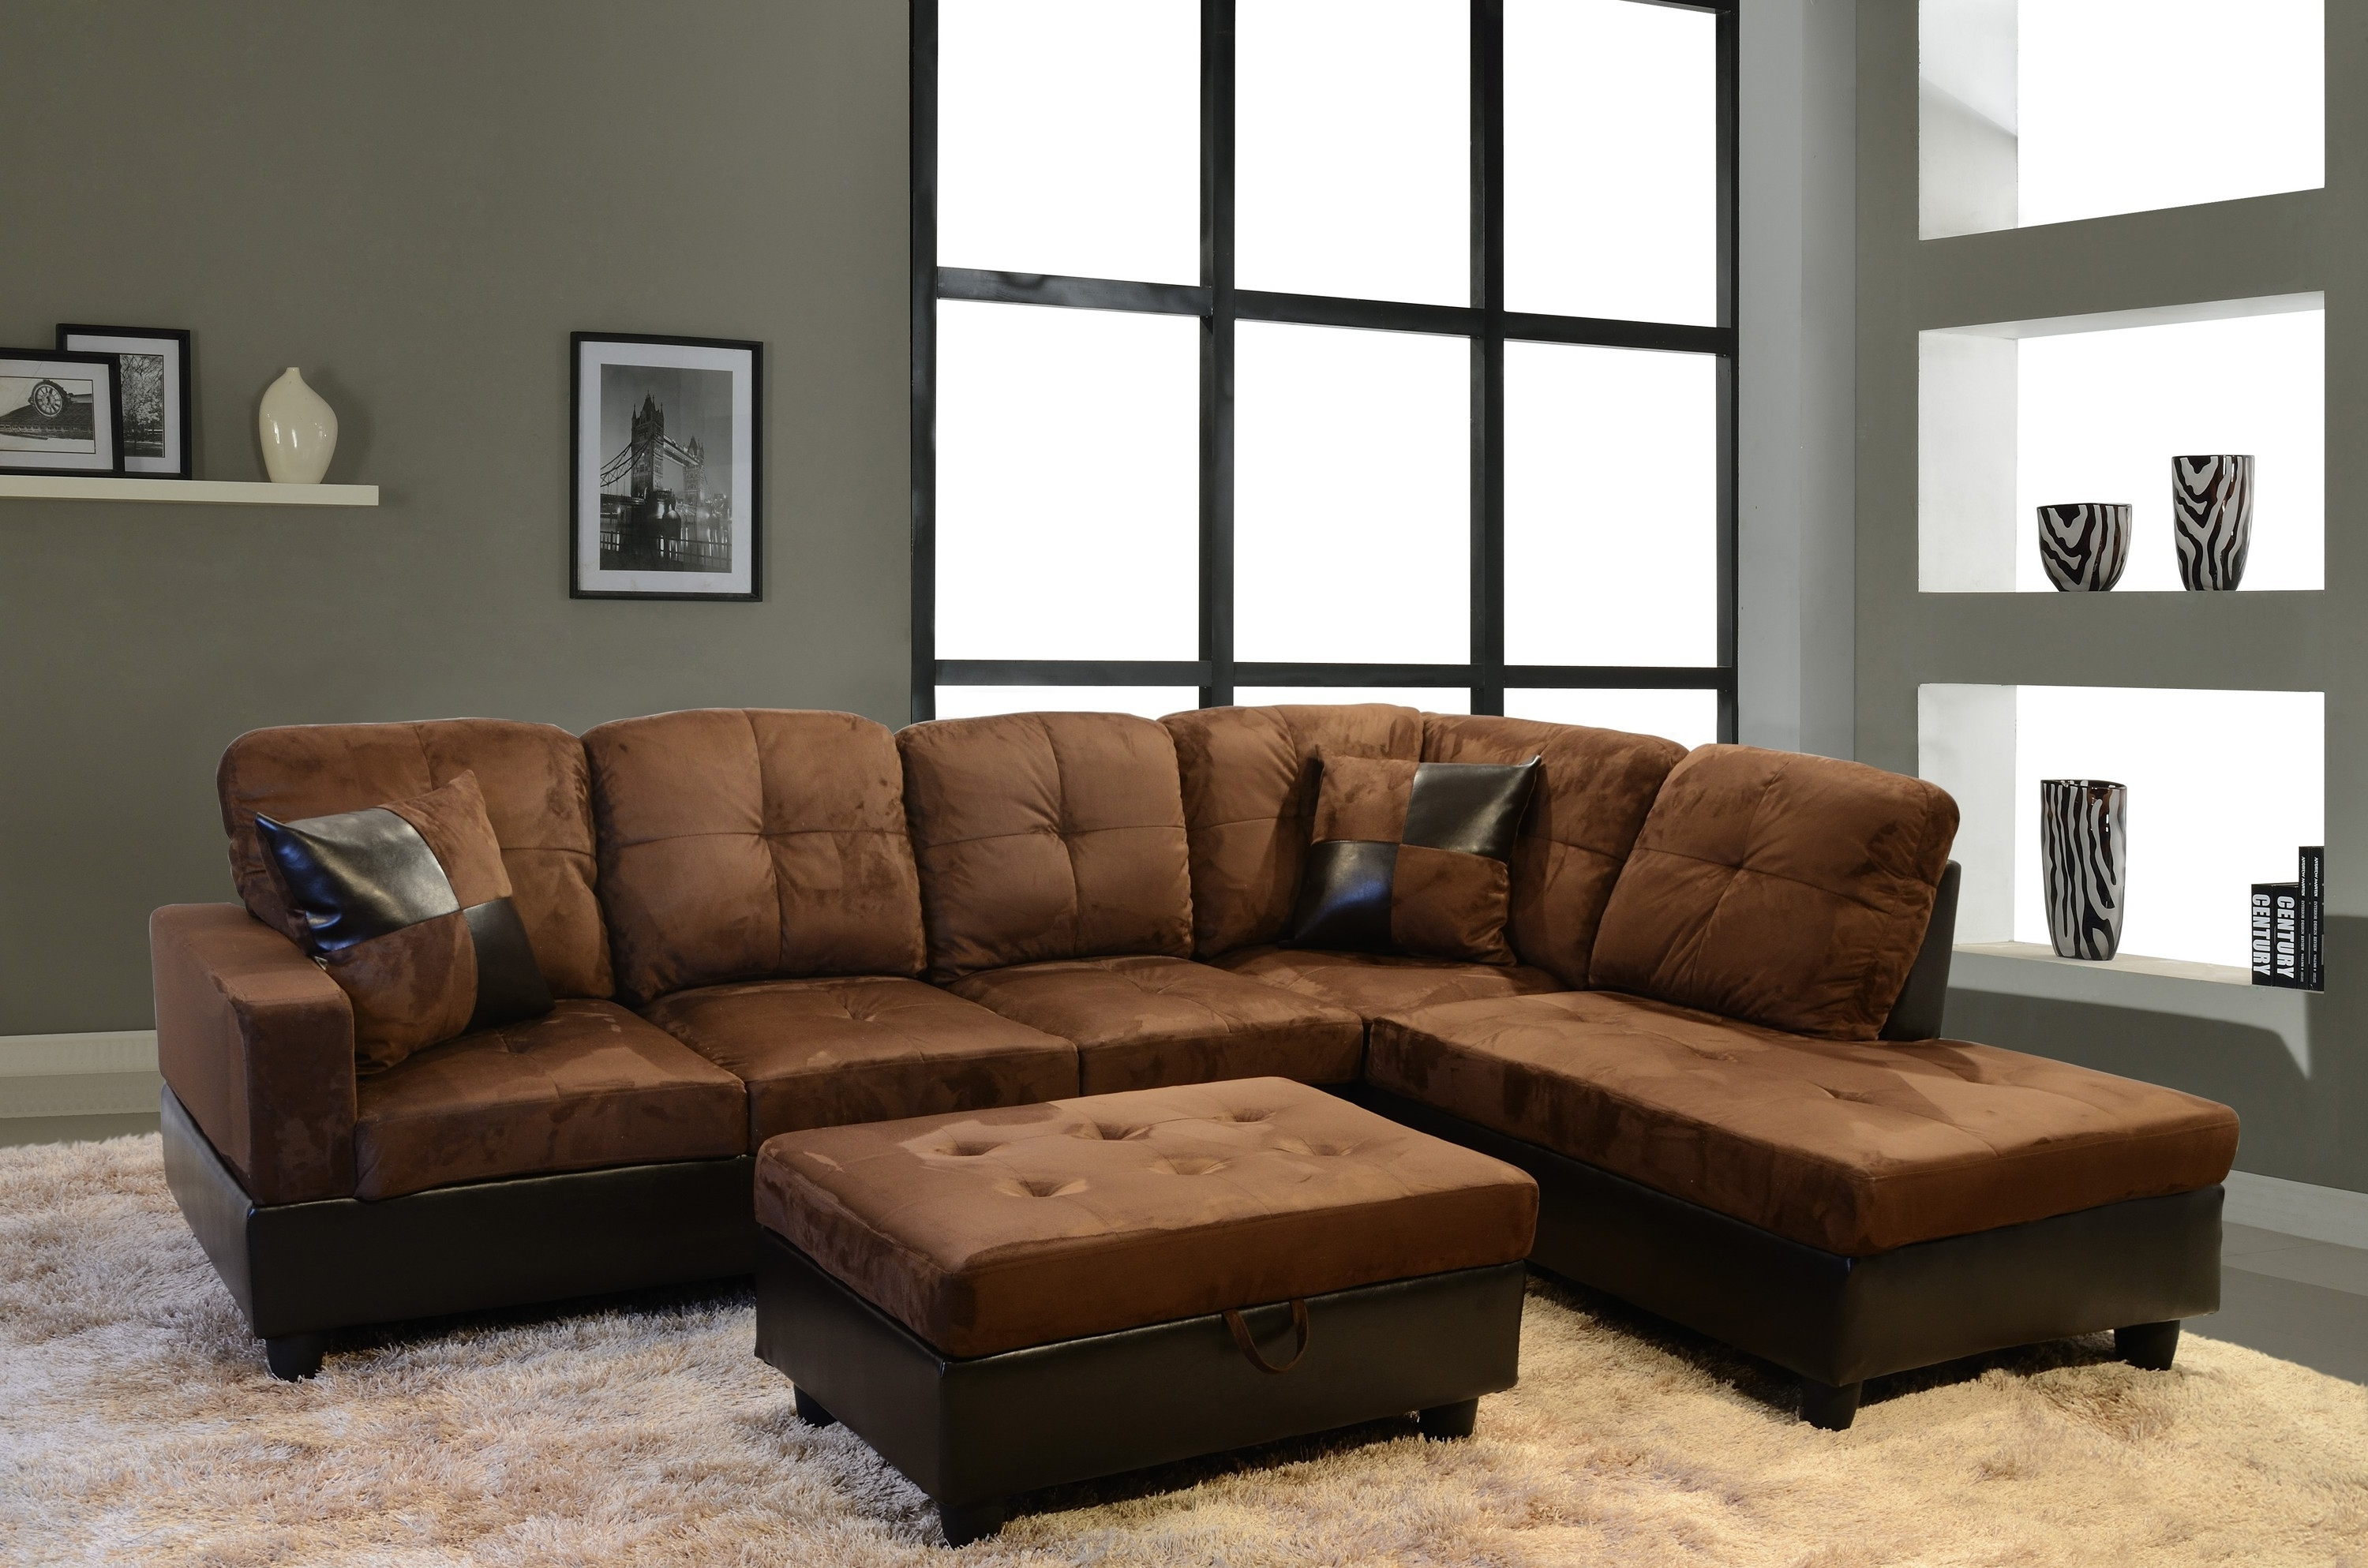 Displaying Gallery of Sectional Sofas At Sears (View 13 of 13 Photos)